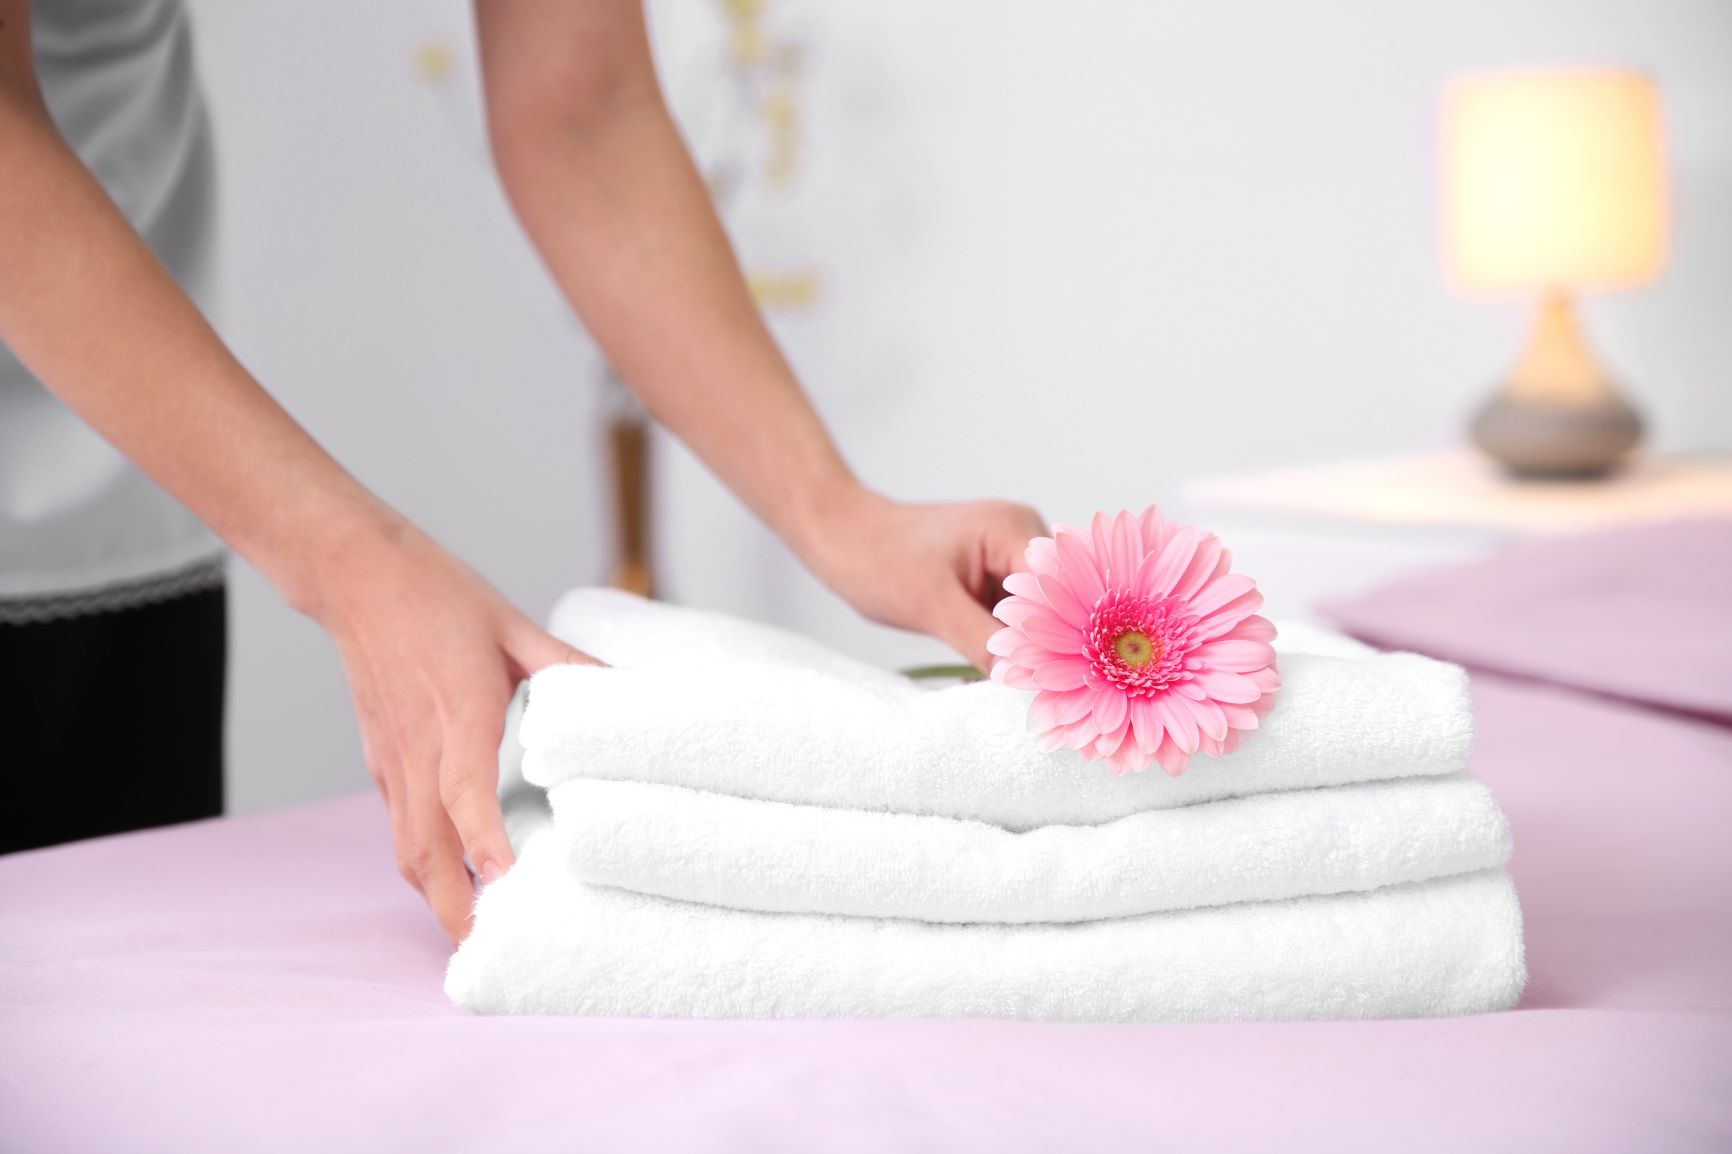 woman laying flower on folded towels